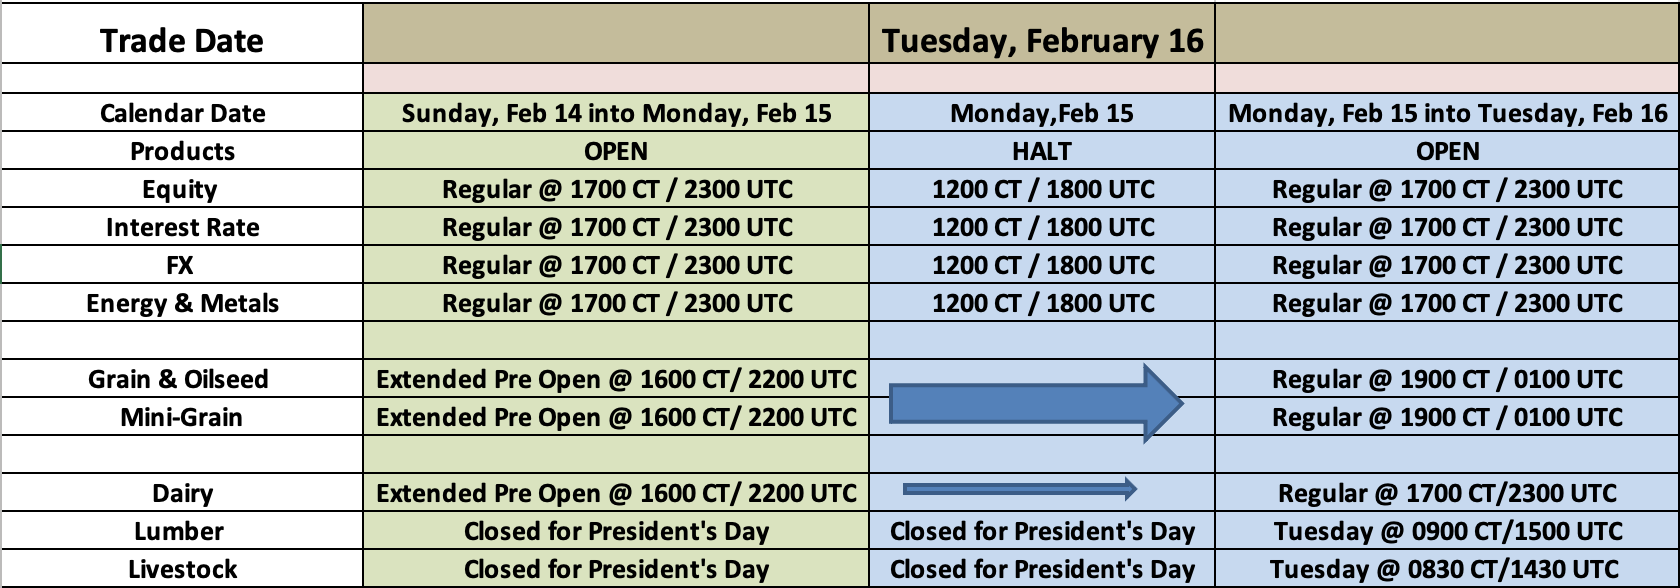 CME Group - Martin Luther King Day Holiday Schedule January 15 - 19, 2021